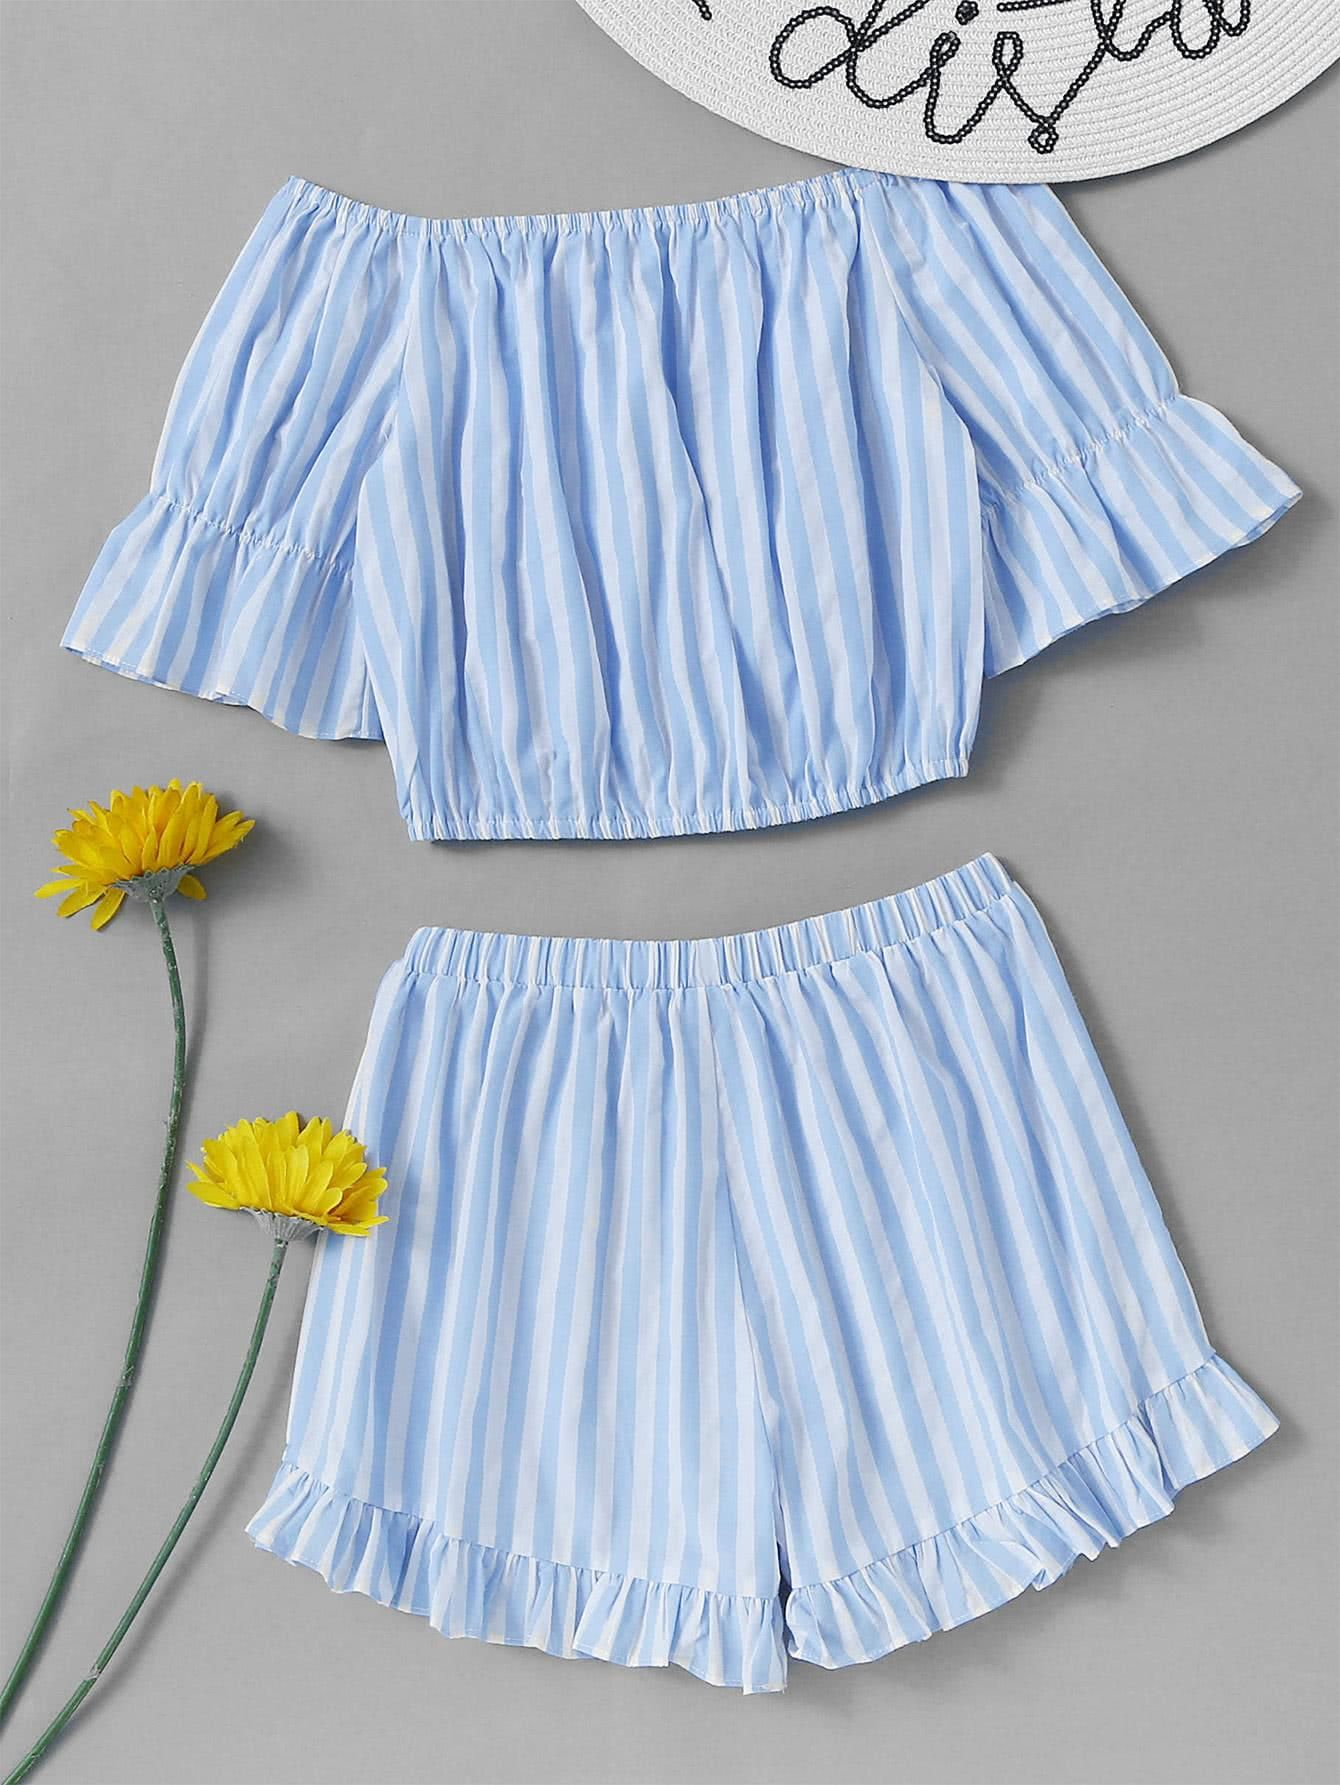 986ba9ba061 AdoreWe - SheIn Bardot Contrast Striped Crop Top With Frill Hem Shorts -  AdoreWe.com